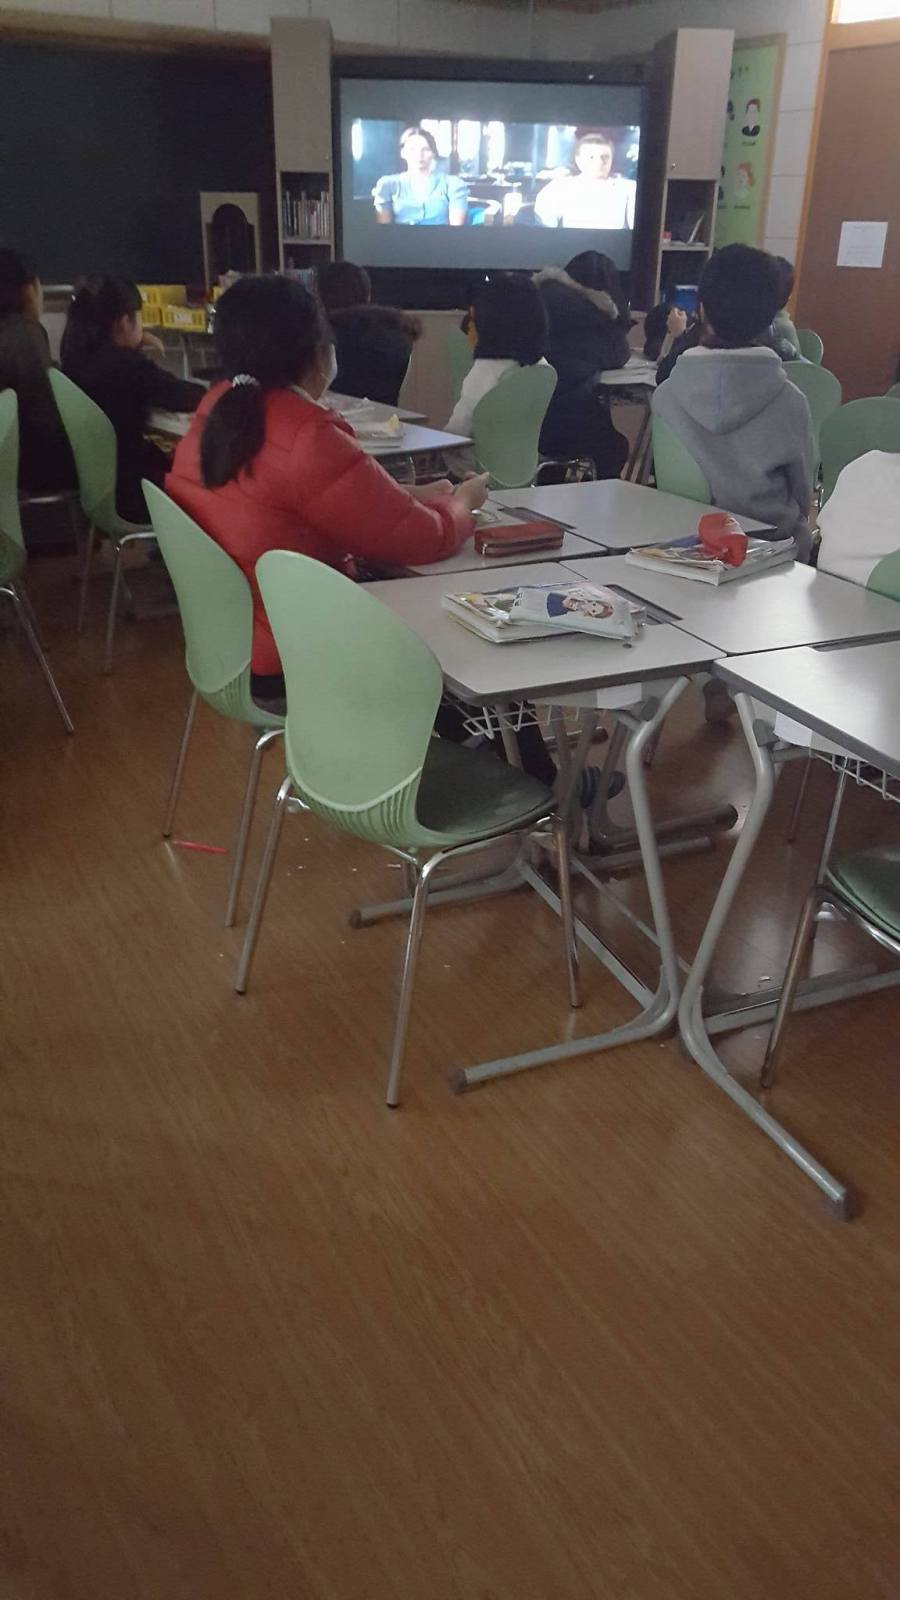 Isolated student sitting alone in the classroom